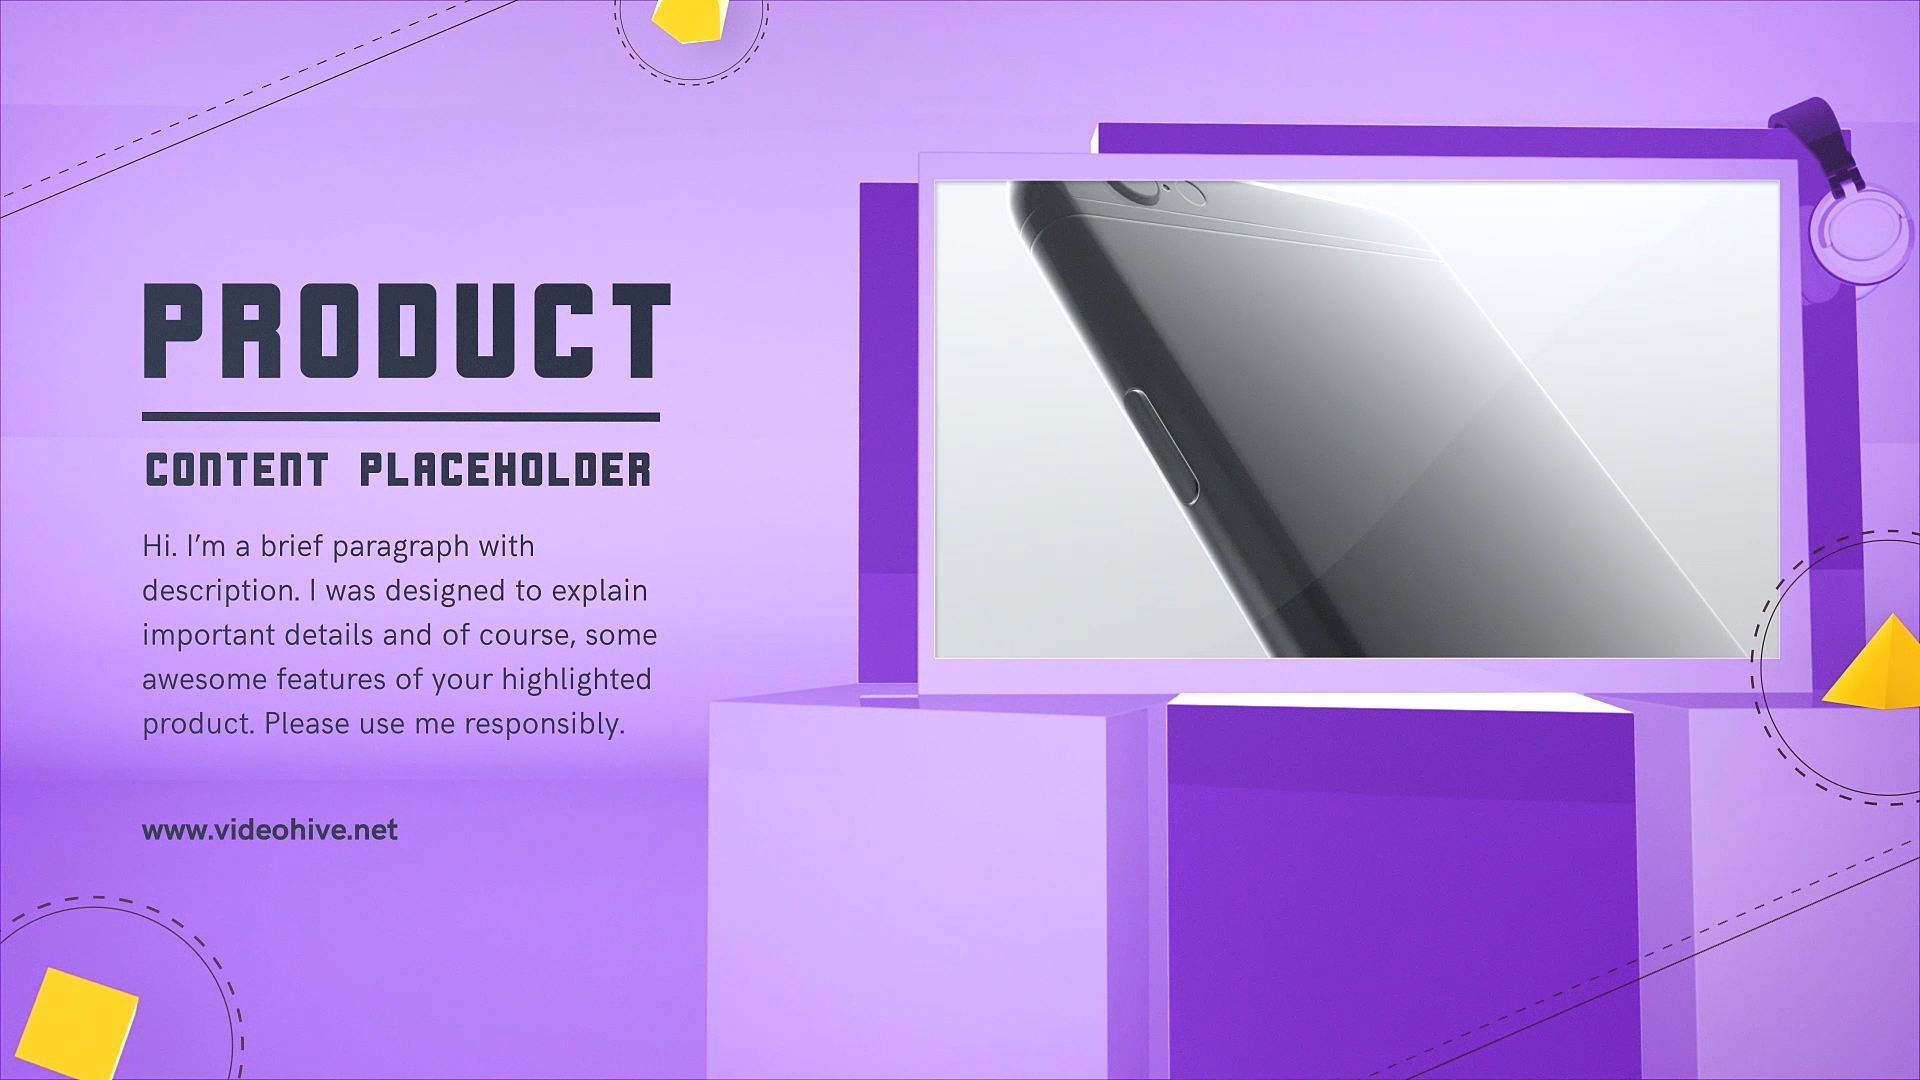 Digital_Product_Review_Pack_1080p_00392